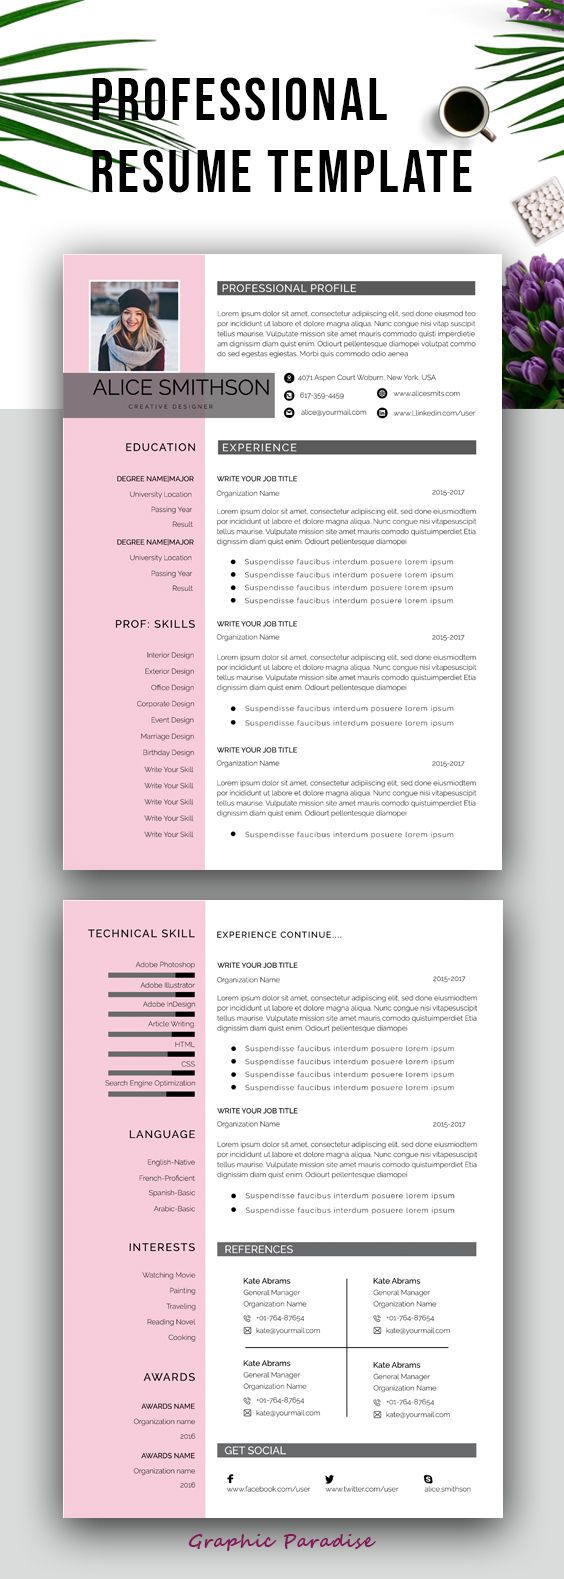 Resume Template Professional Resume Template Instant Download Resume With Photo Resume Design Resume Template Word Curriculum Vite Cv Resume Template Professional Resume Template Resume Template Word